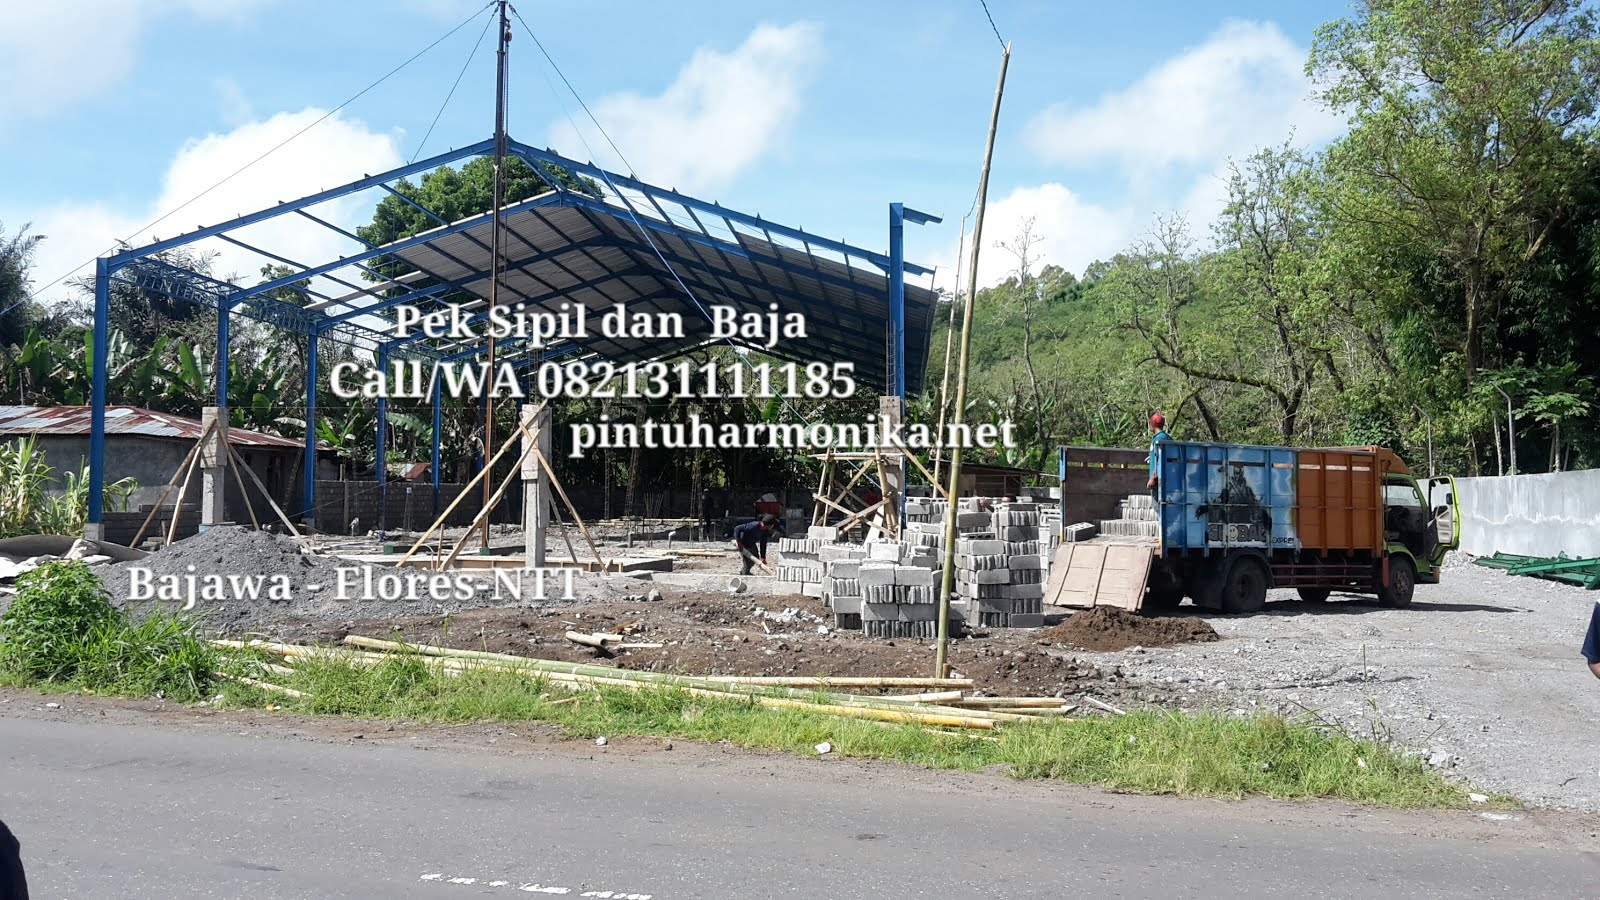 WEBSITE PINTU HARMONIKA